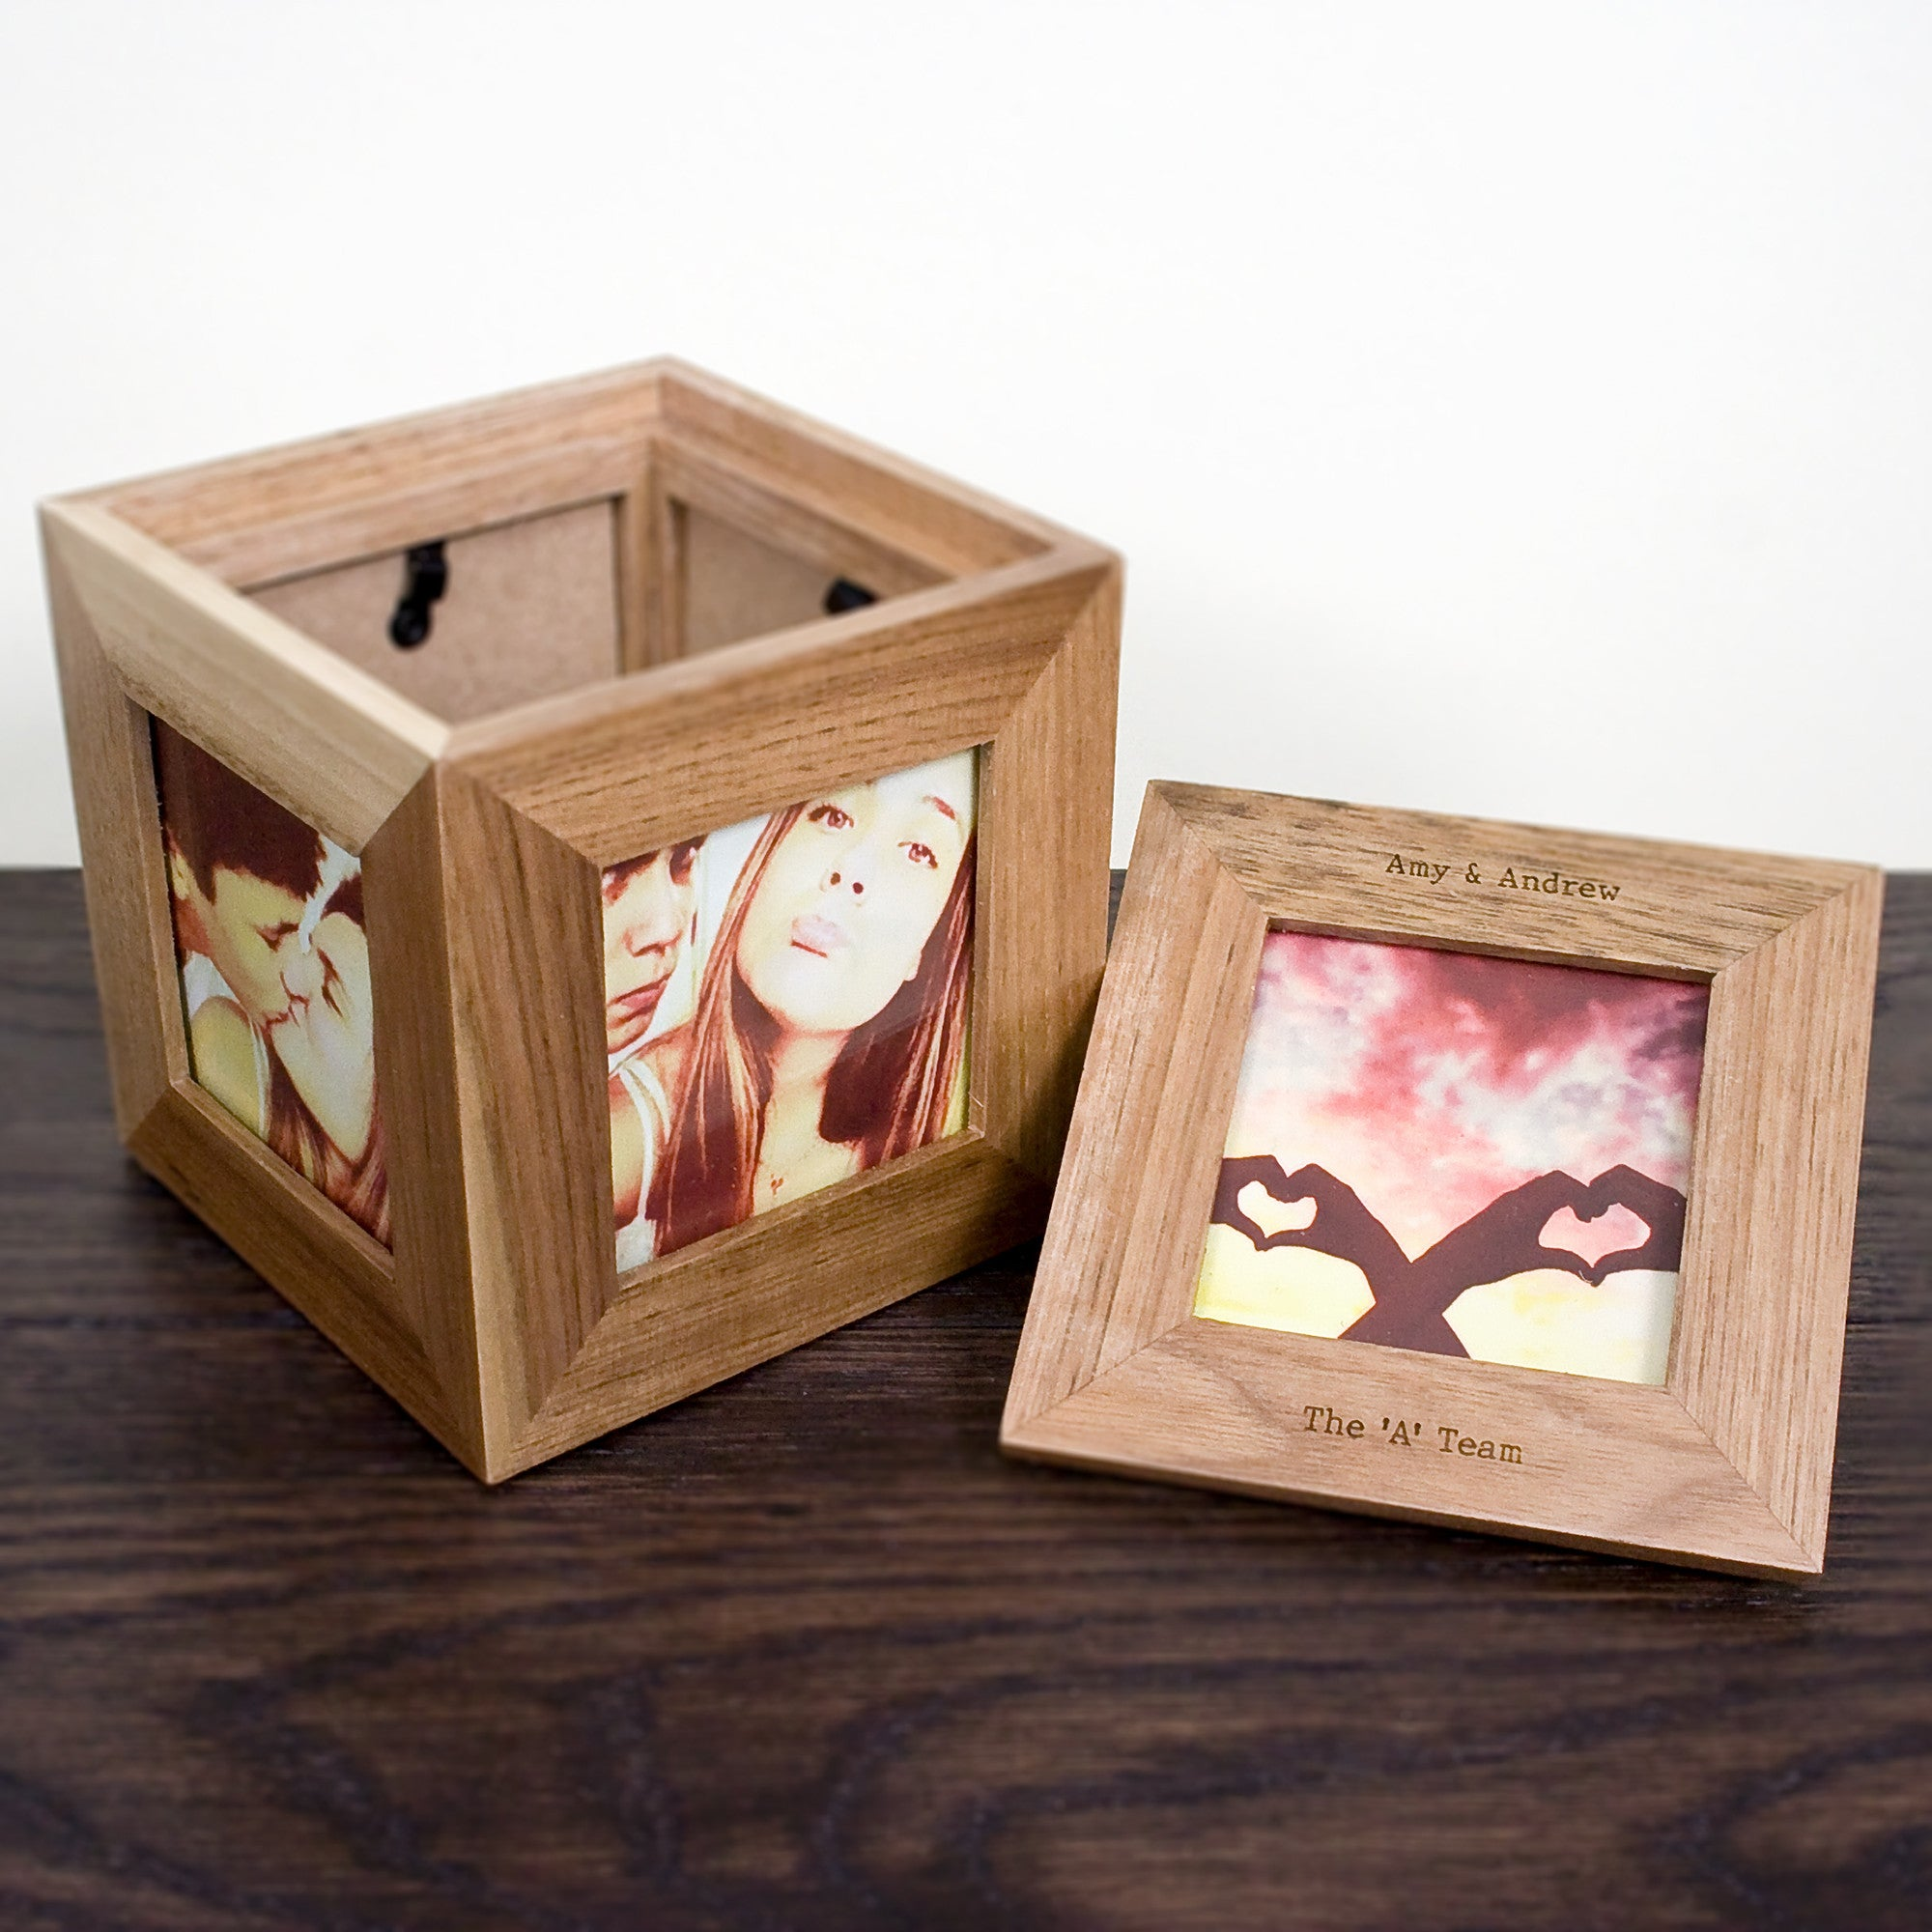 Personalised Oak Photo Cube Keepsake Box - Personalised Gift Solutions - 5